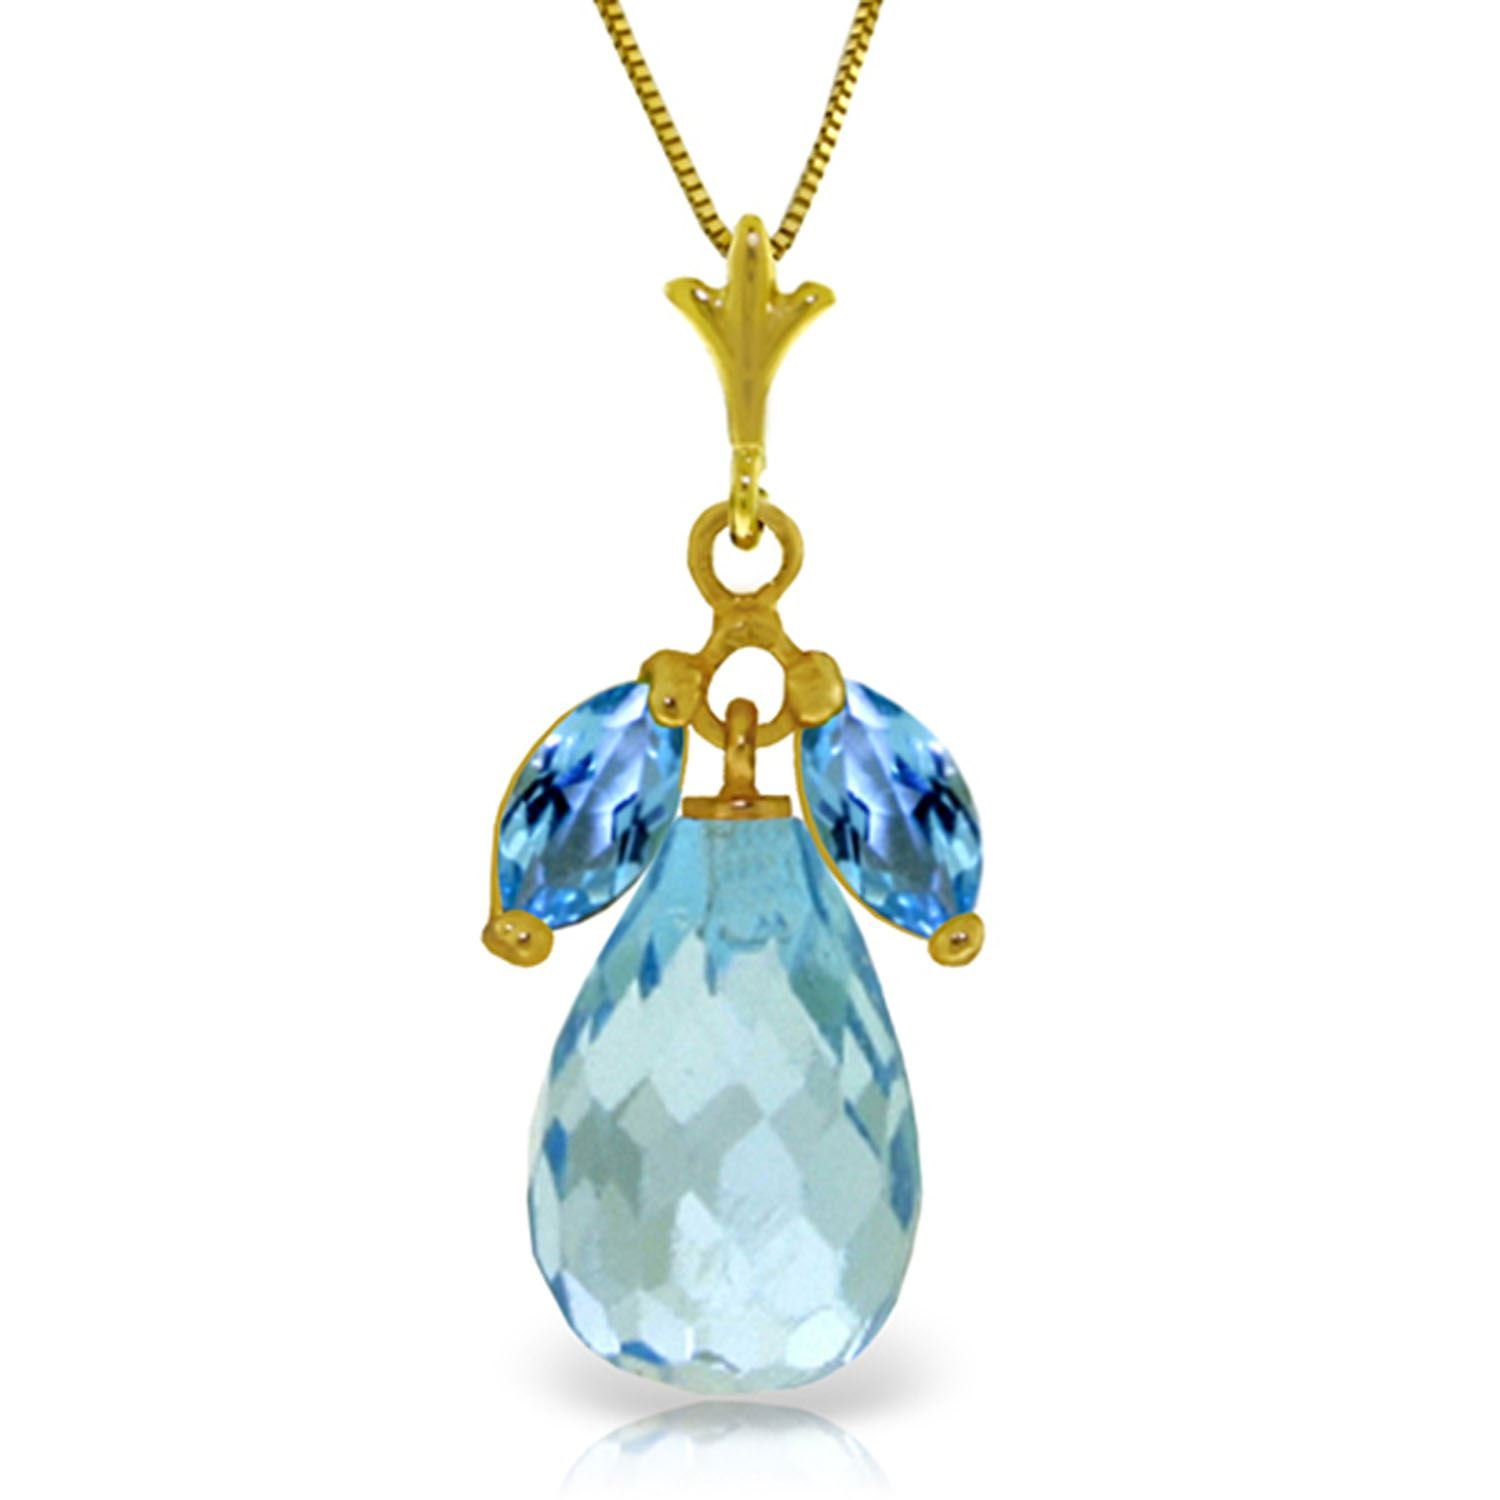 ALARRI 7.2 Carat 14K Solid Gold Love Potion Blue Topaz Necklace with 18 Inch Chain Length